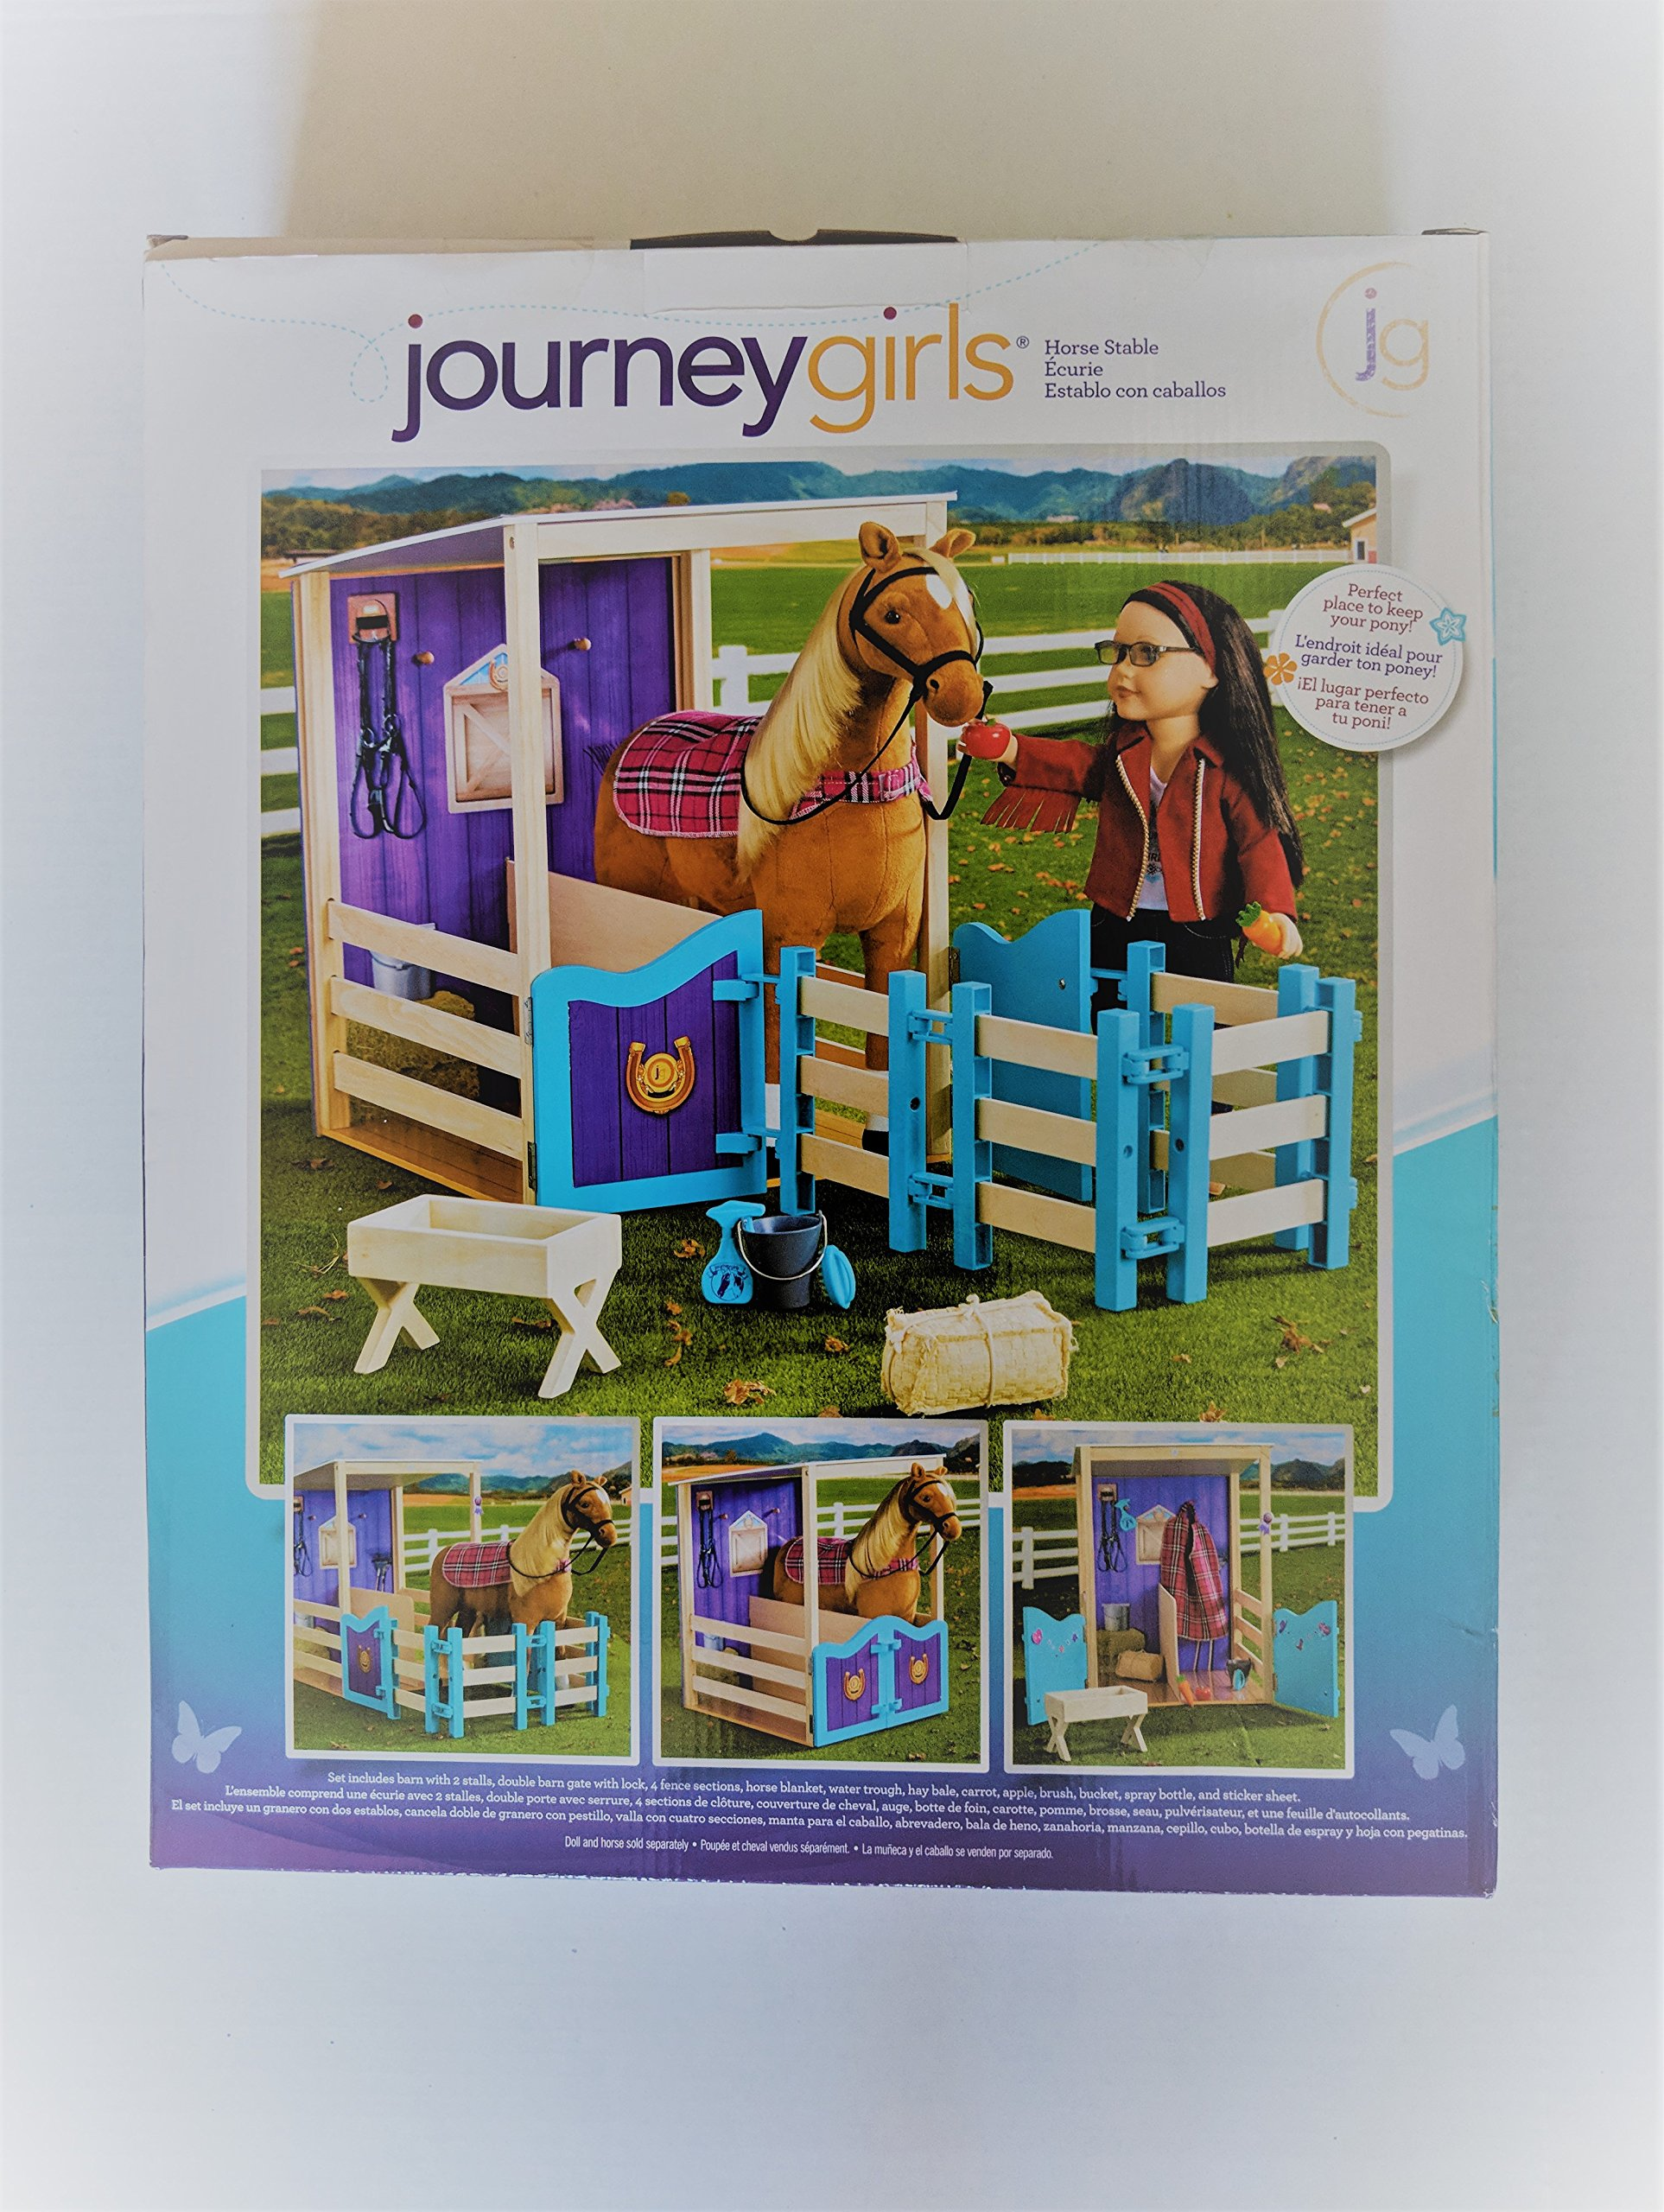 Journey Girls Horse Stable with 2 Stalls, Double Barn Gate with Lock, (Horse NOT Included) 4 Fence Sctions, Horse Blanket, and Water Trough